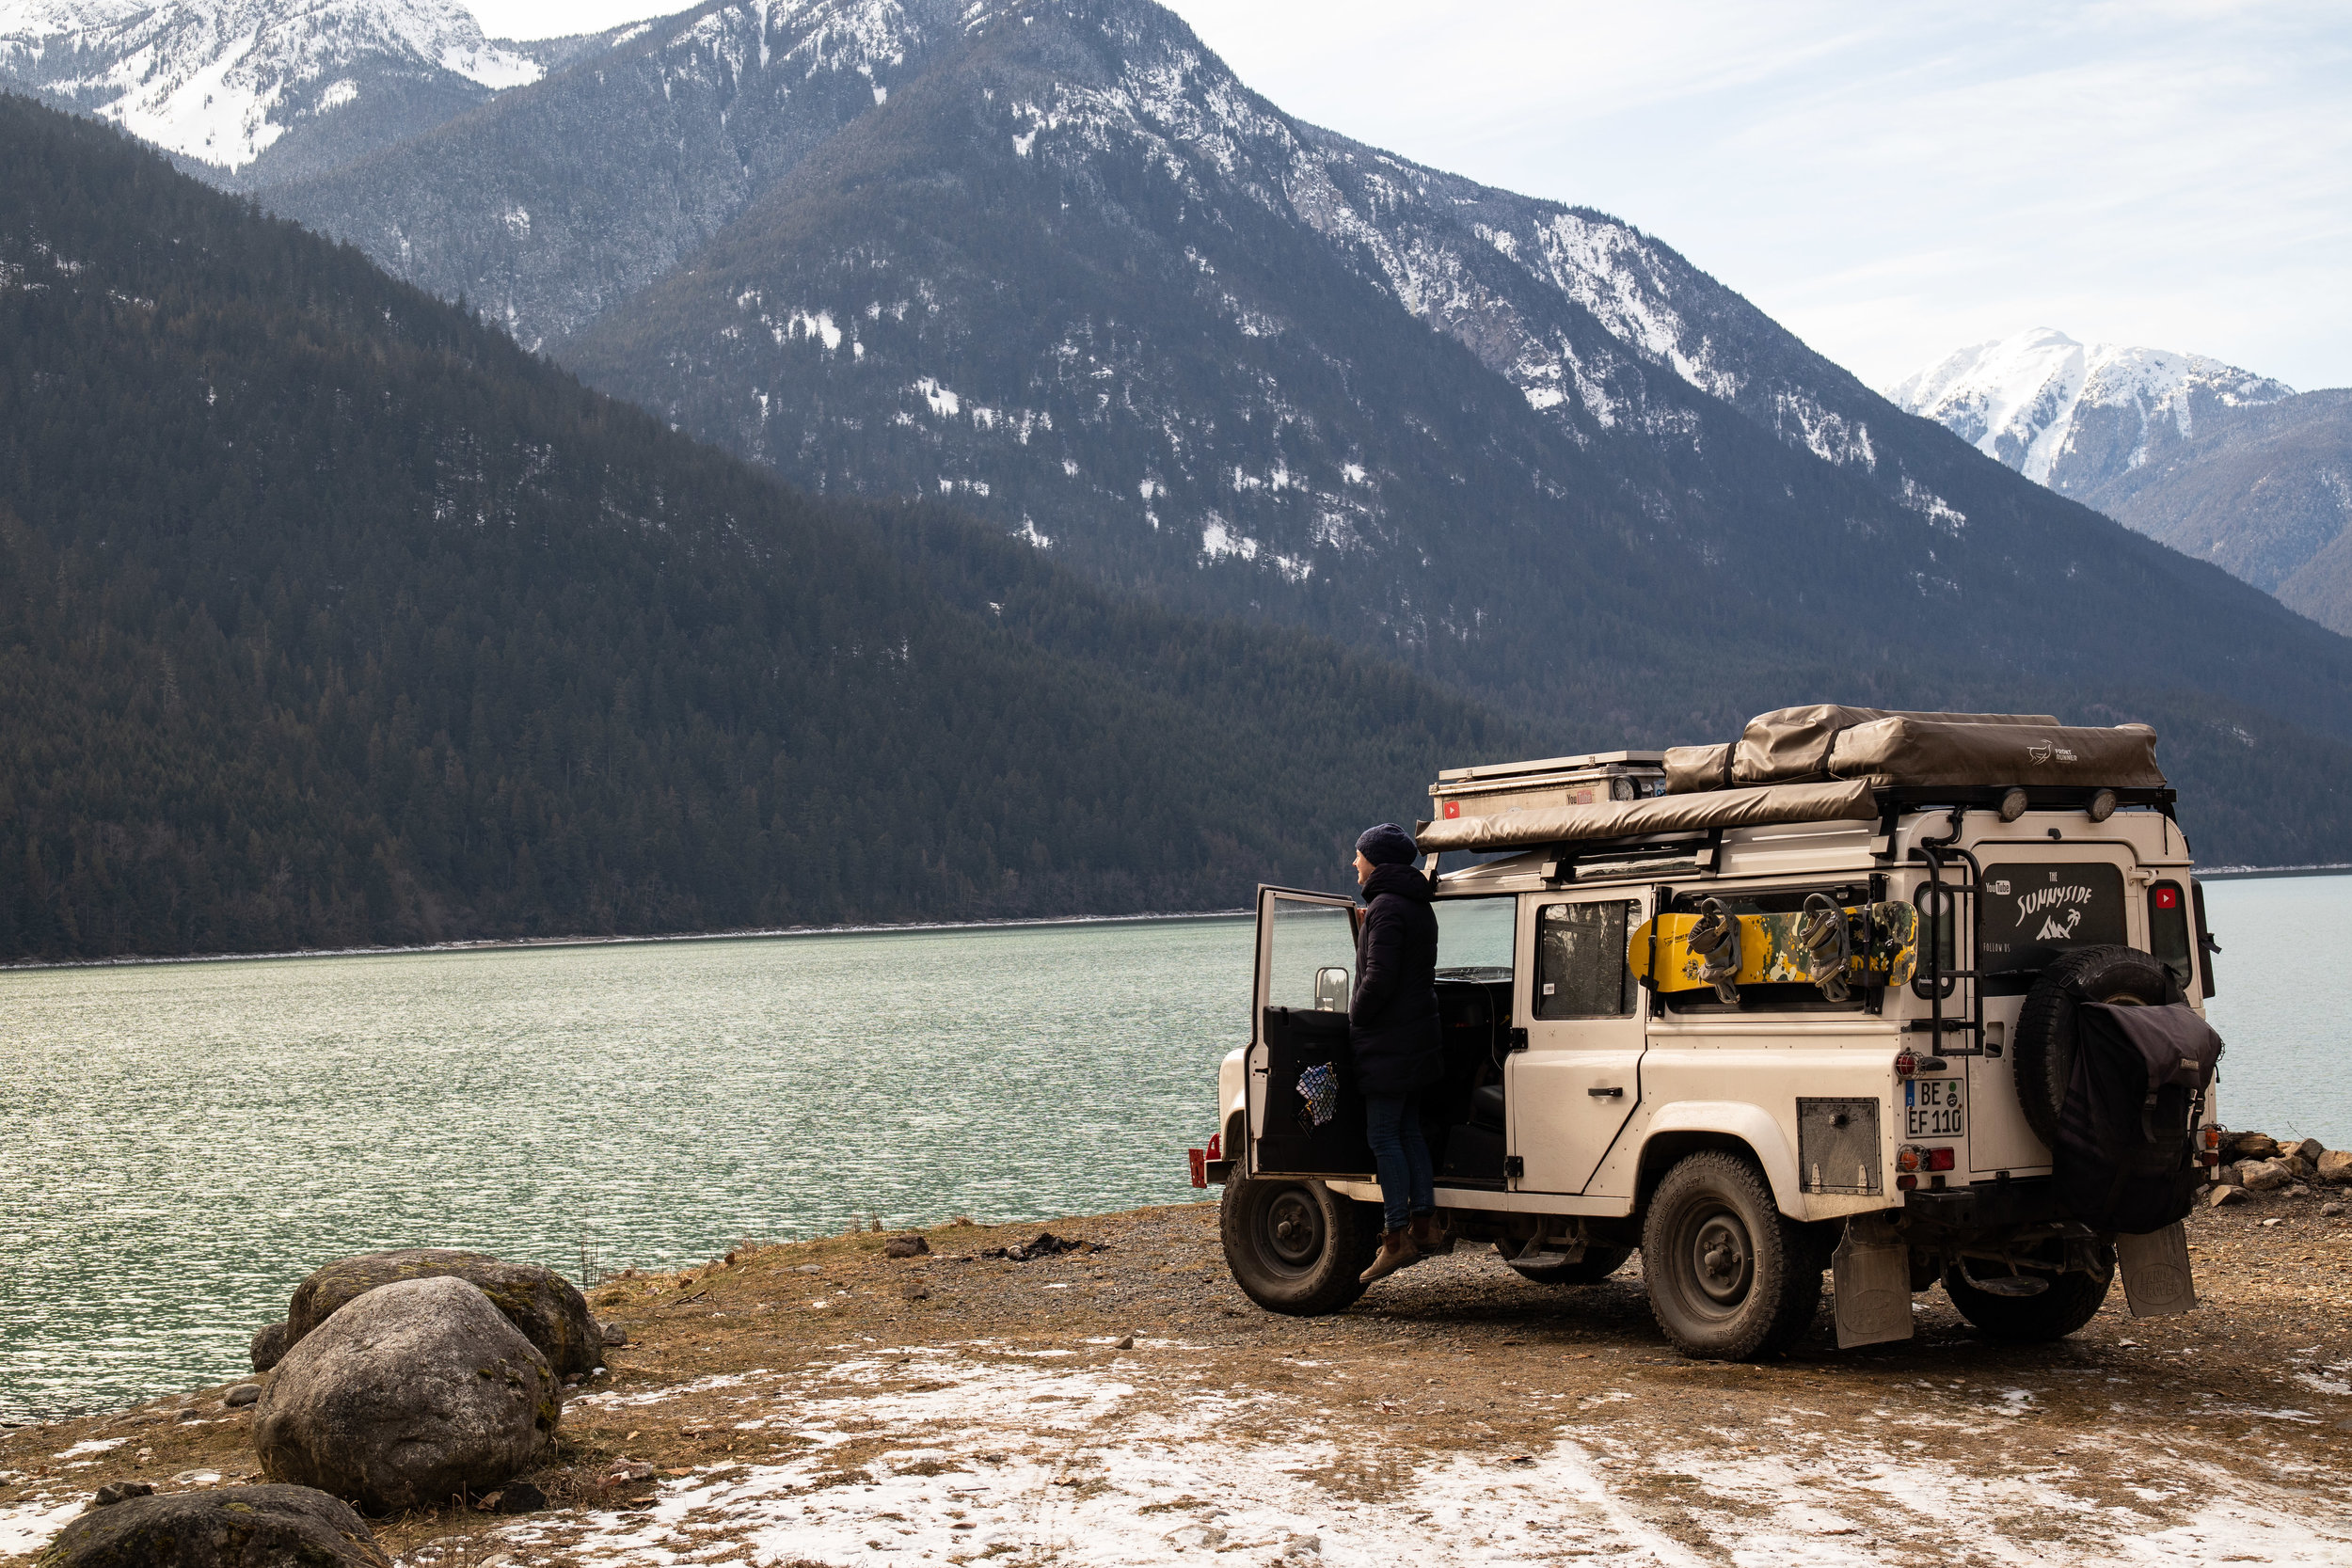 The_Sunnyside_Land Rover Defender_Campervan.jpg